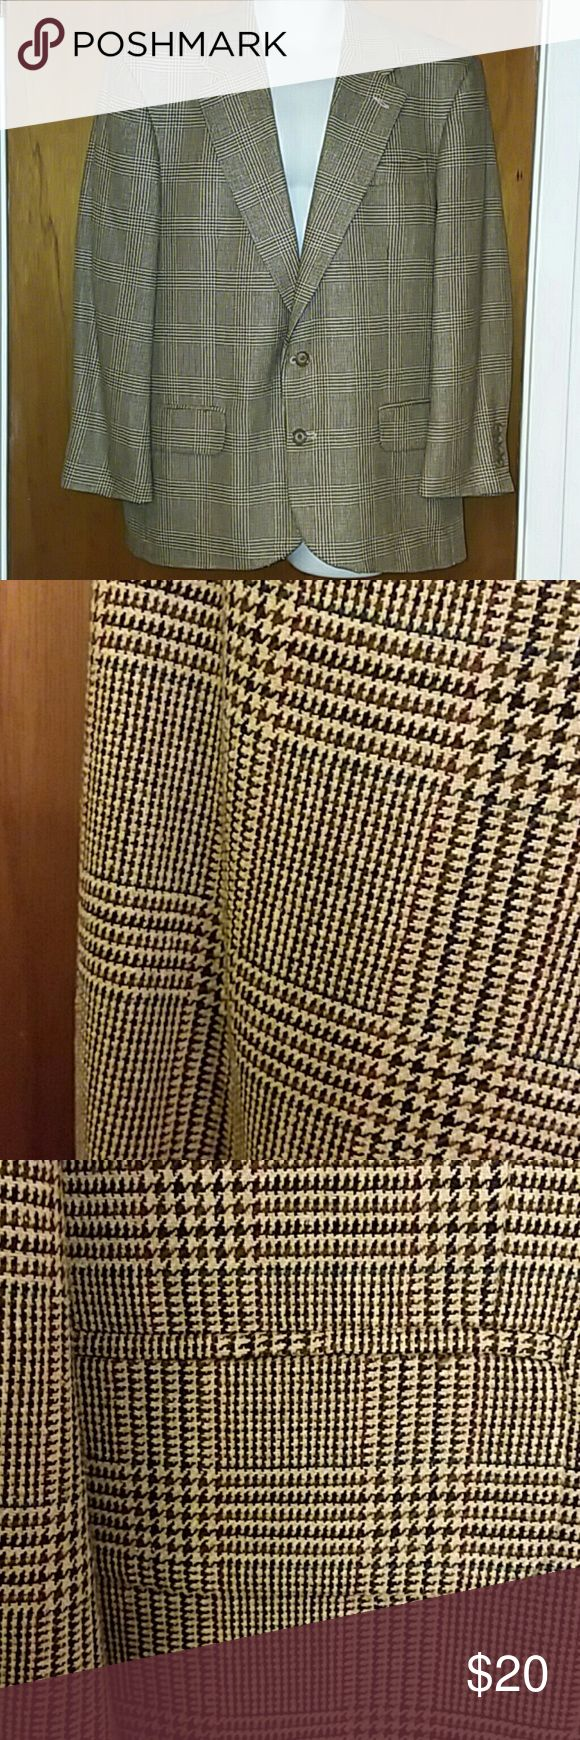 Brown Tweed Sport Coat 42R by Oscar de la Renta Vintage brown tweed sport coat in size 42R by Oscar de la Renta. The first photo does not represent the color well. Subsequent photos show the color and the pattern very well. Sleeve length 22 1/2 inches. The hem has been repaired. Otherwise in excellent condition. Oscar de la Renta Suits & Blazers Sport Coats & Blazers